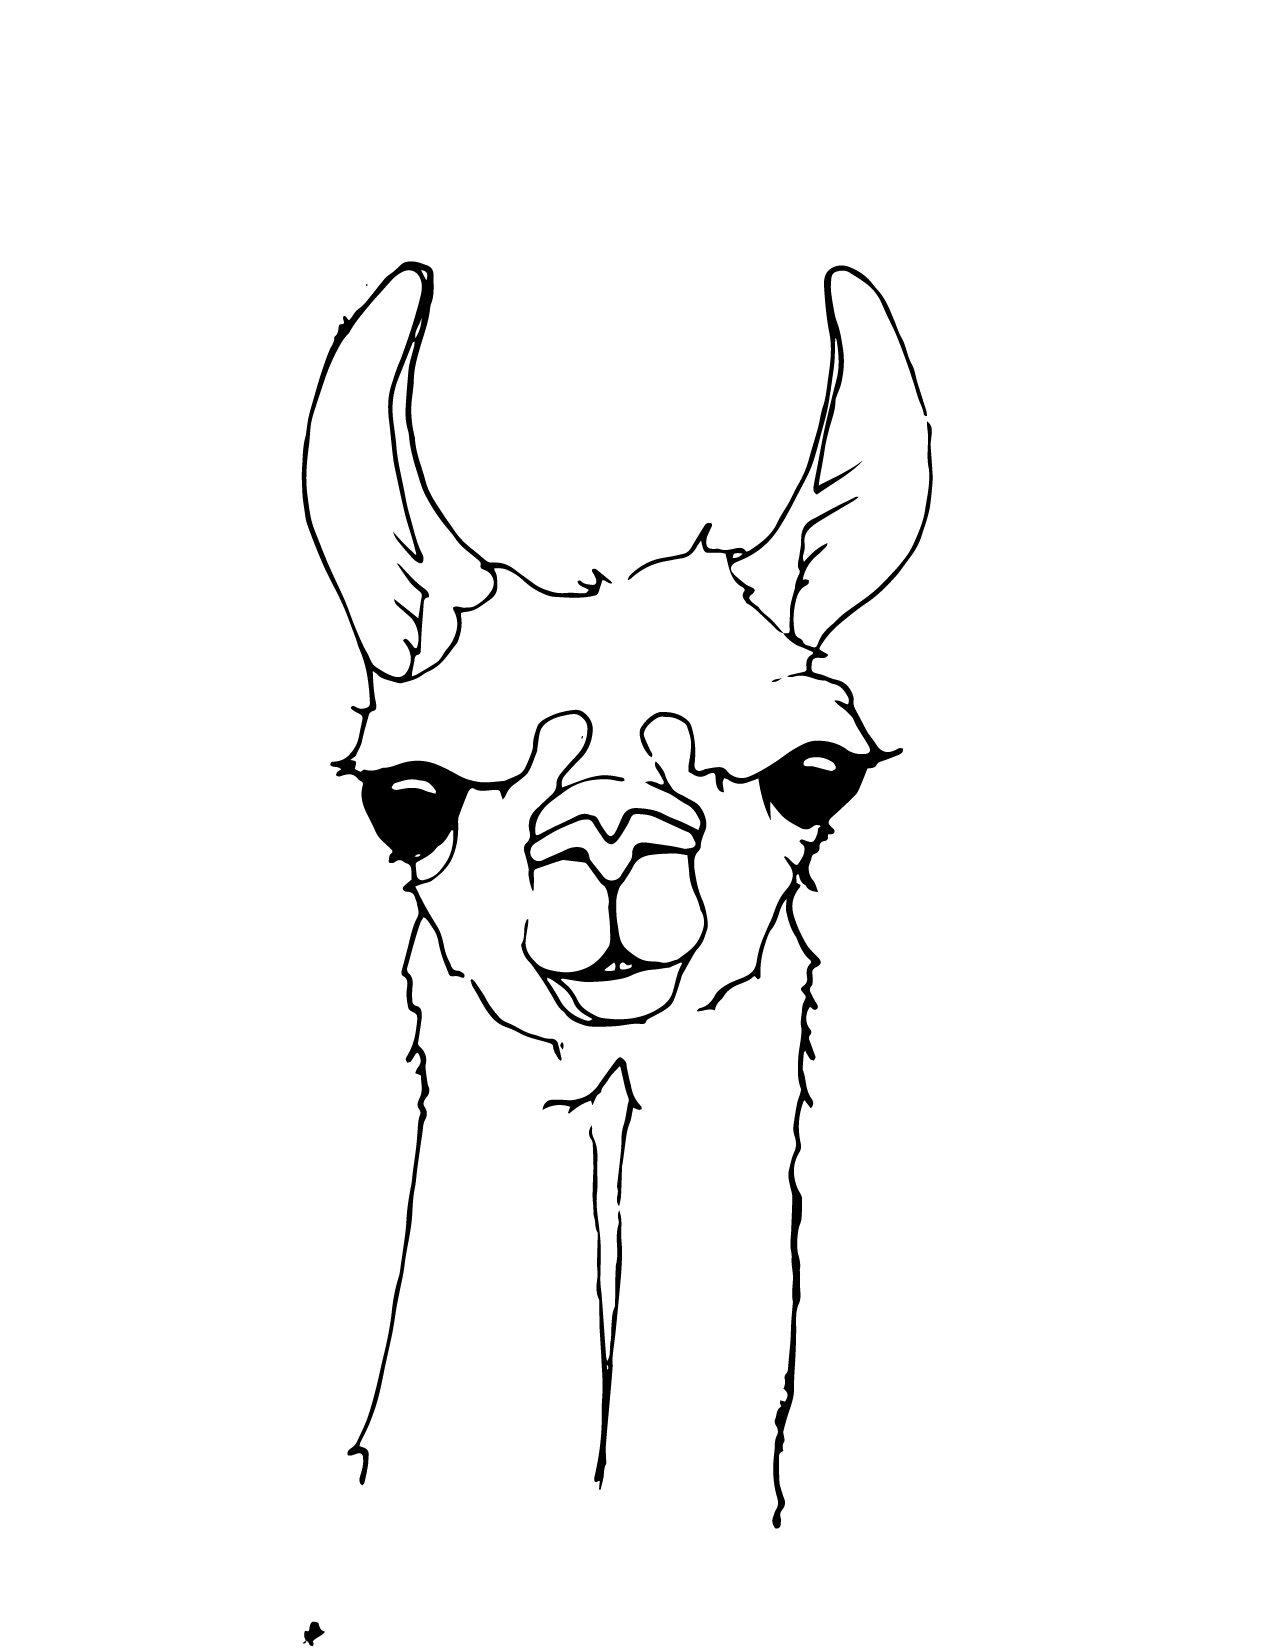 Cozy Llama Coloring Pages Coloring Page Leaping Llamas